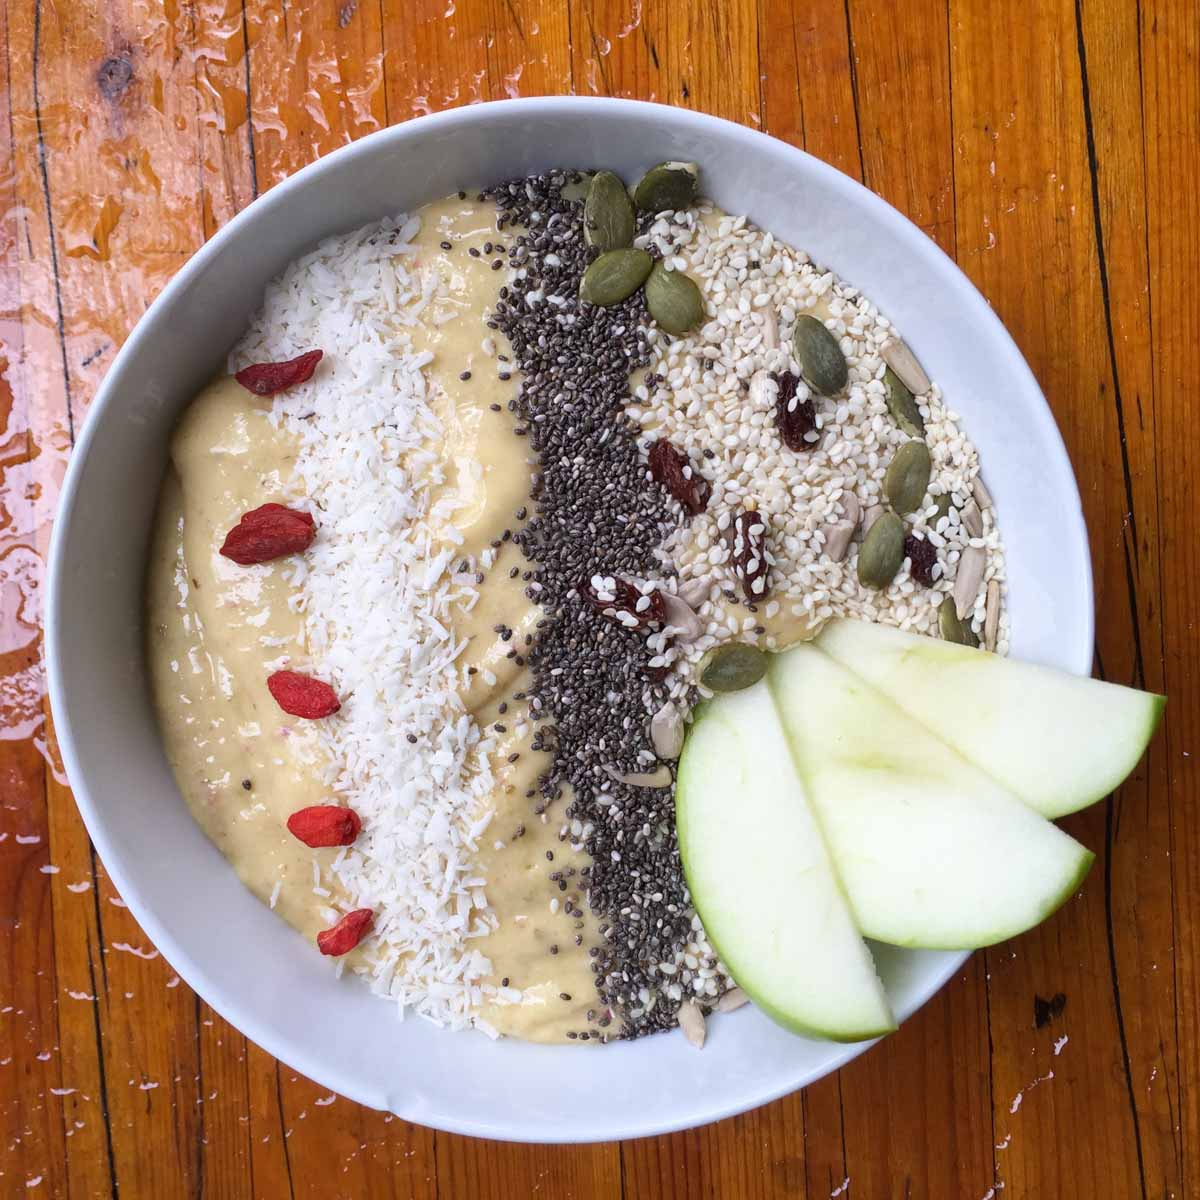 green-moustache-smoothie-bowl.jpg